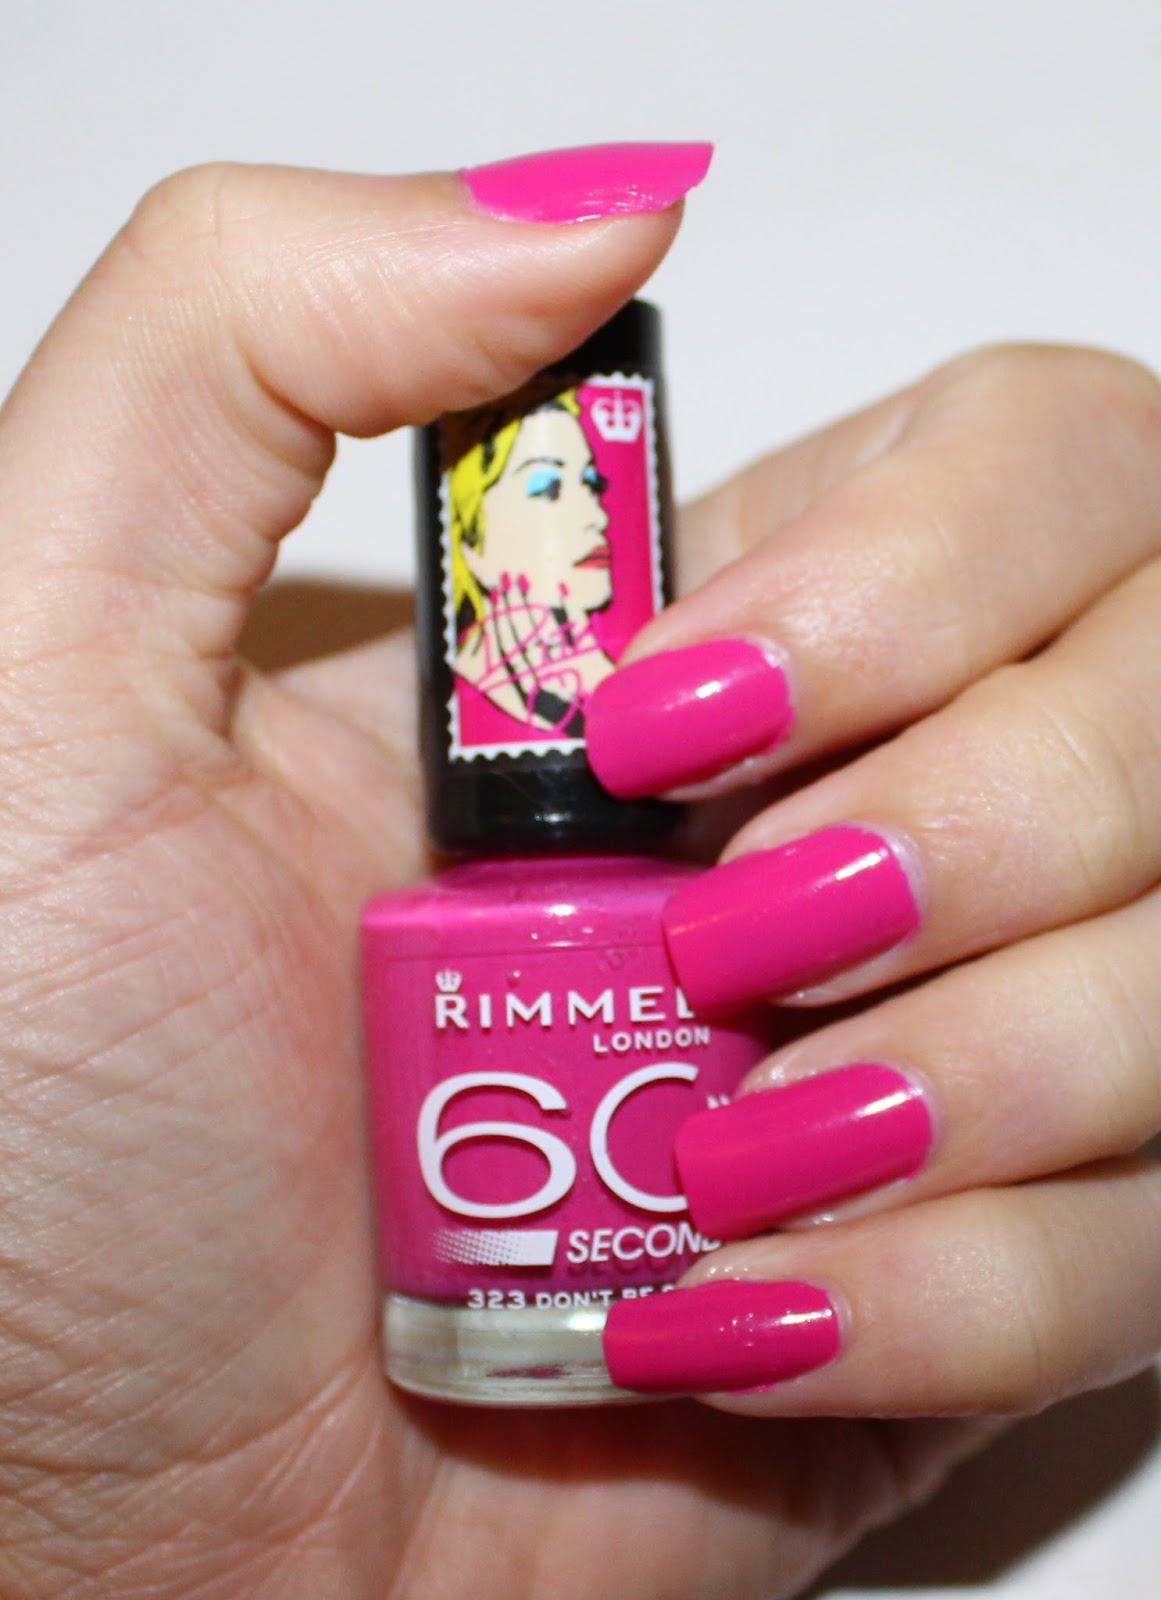 Rimmel 60 Seconds Nail Polish Swatches - Creative Touch